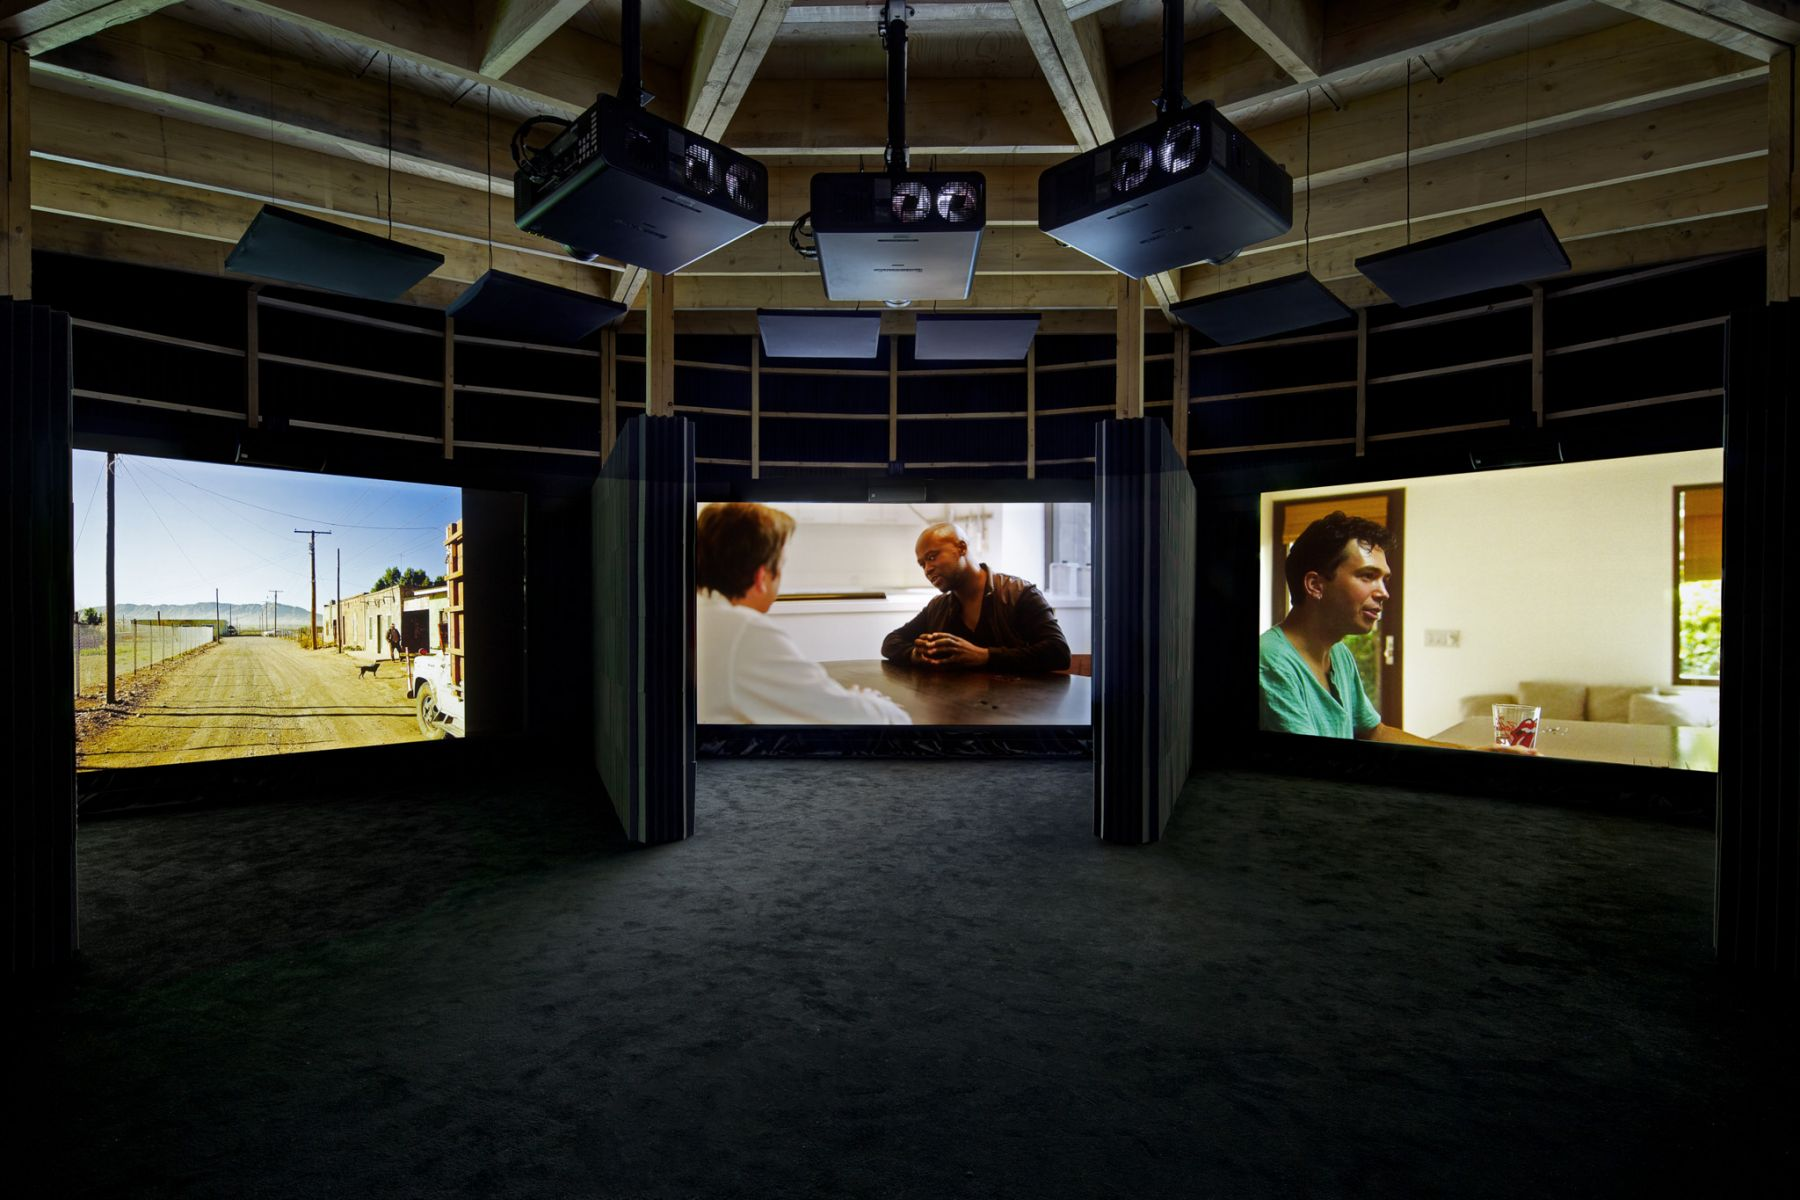 Doug Aitken, THE SOURCE, 2012, Tate Liverpool